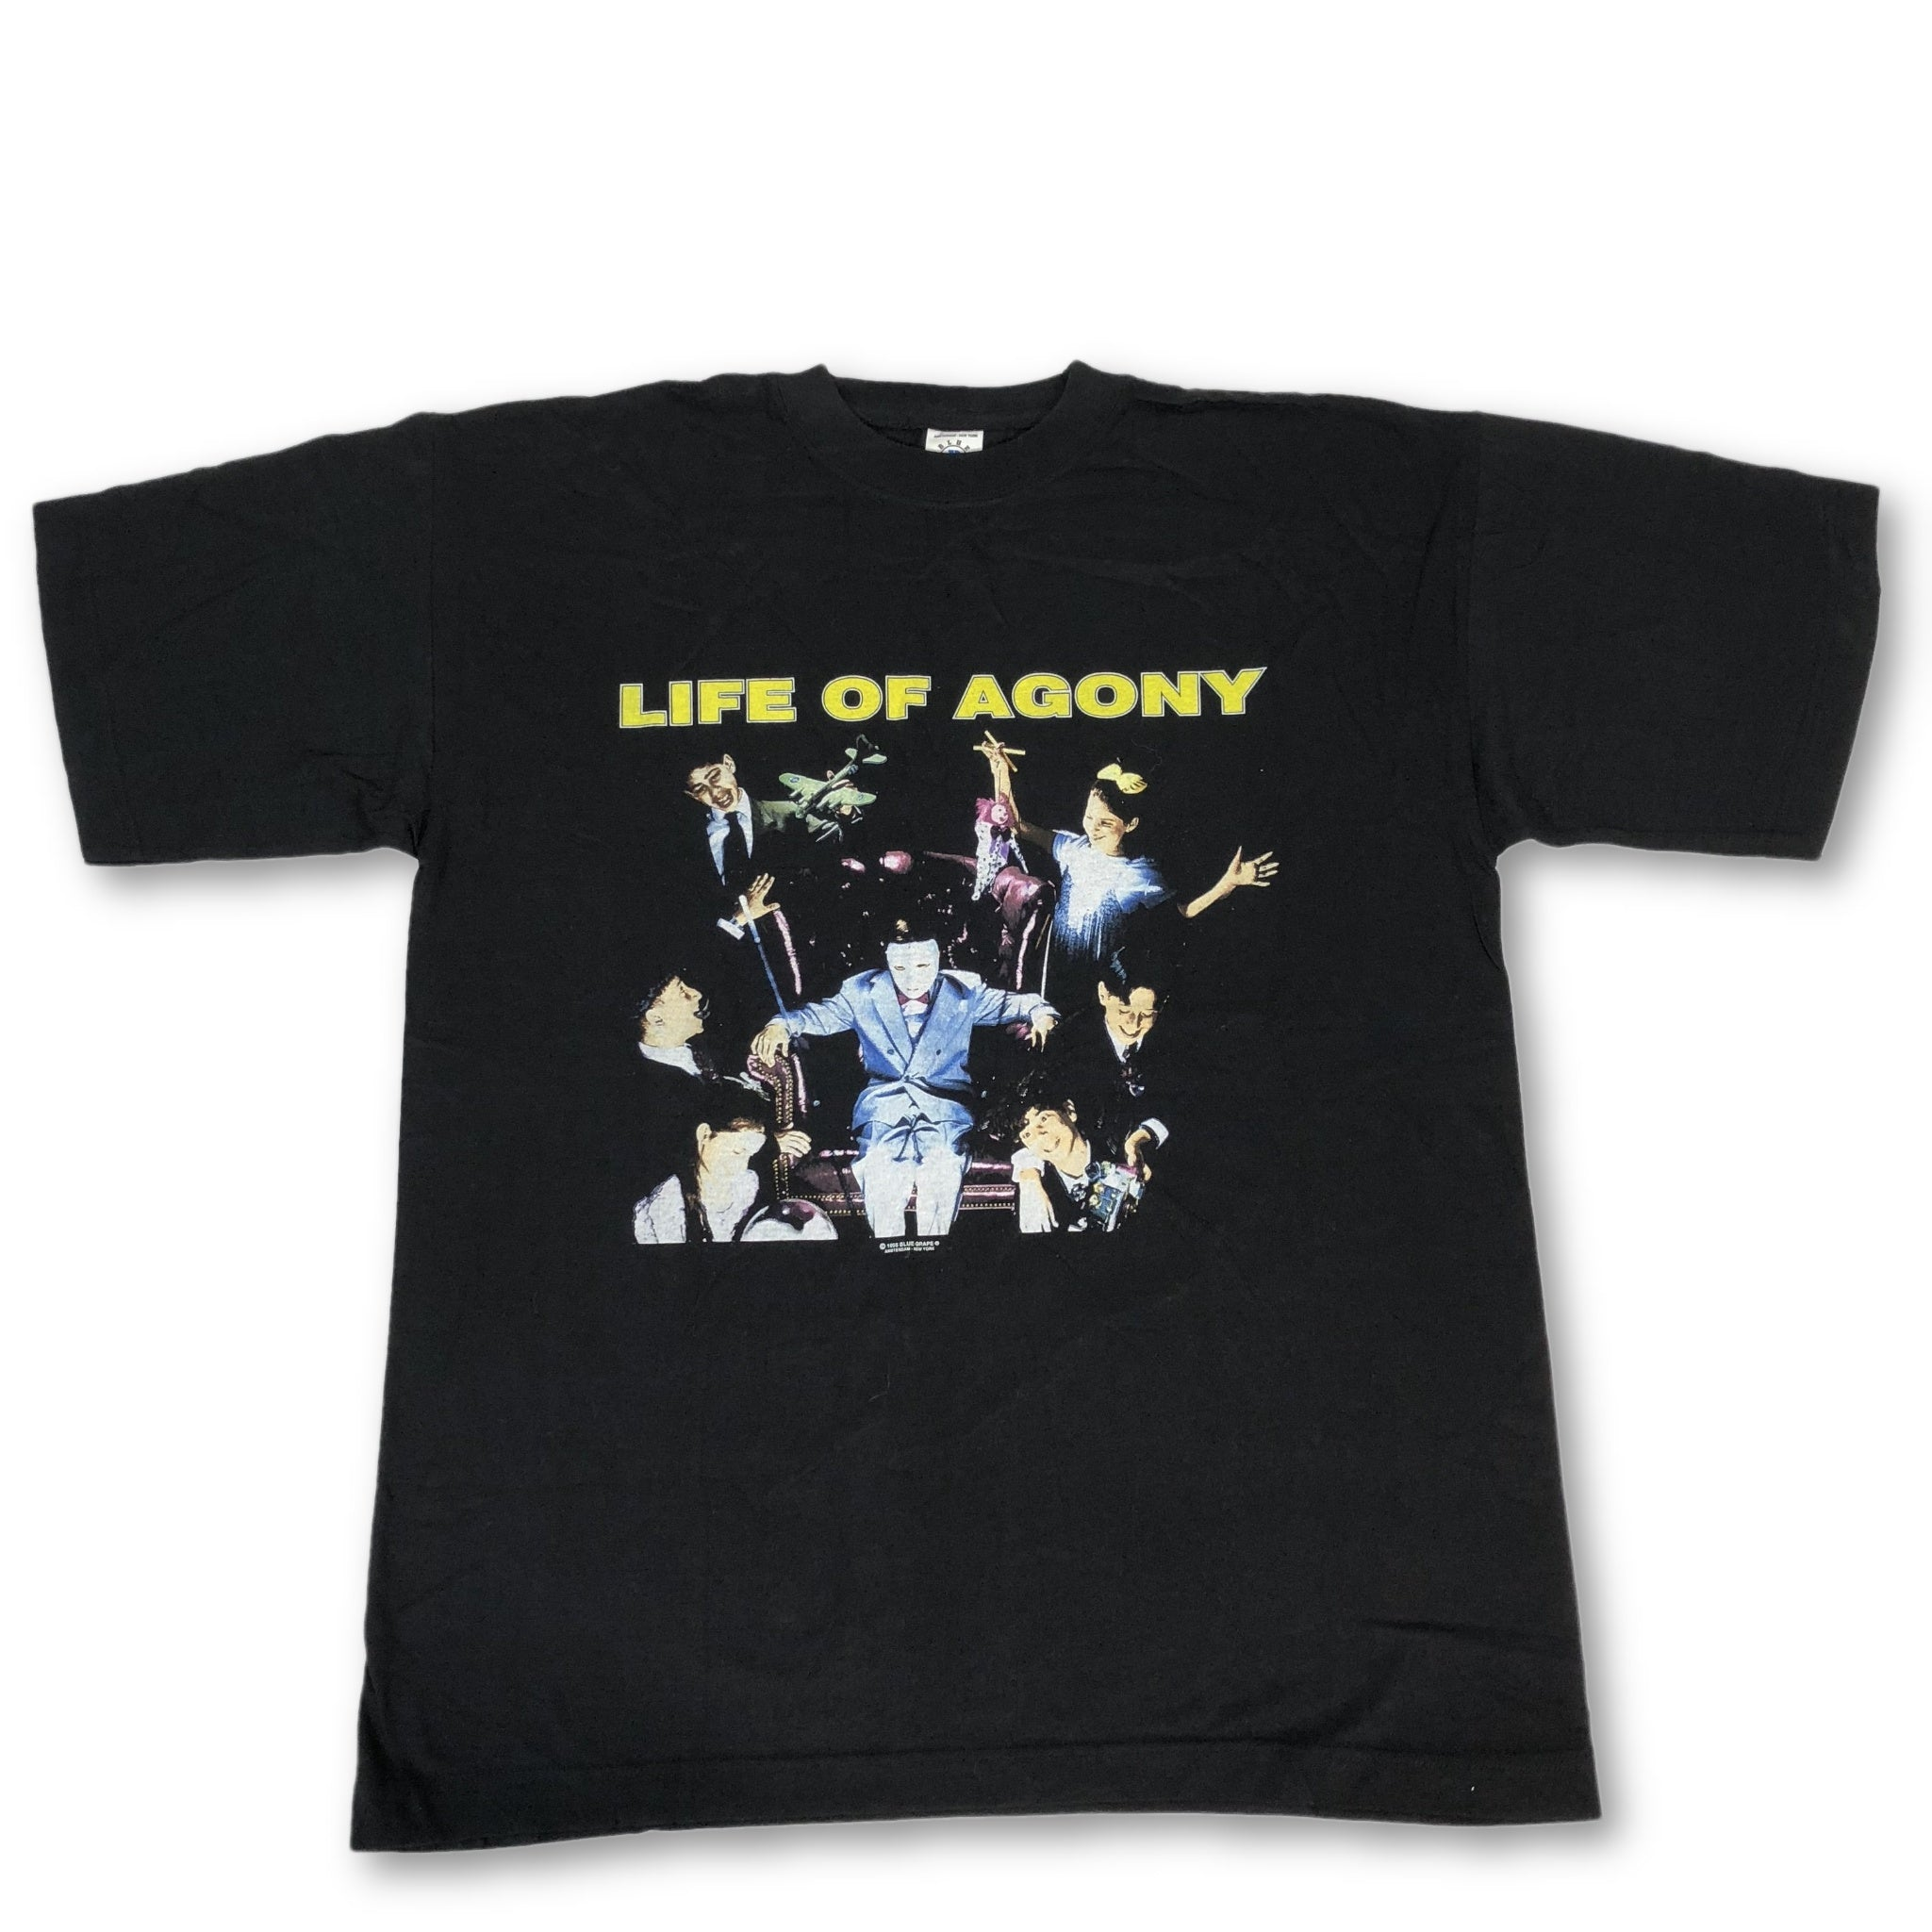 "Vintage Life of Agony ""Lost at 22"" T-Shirt"